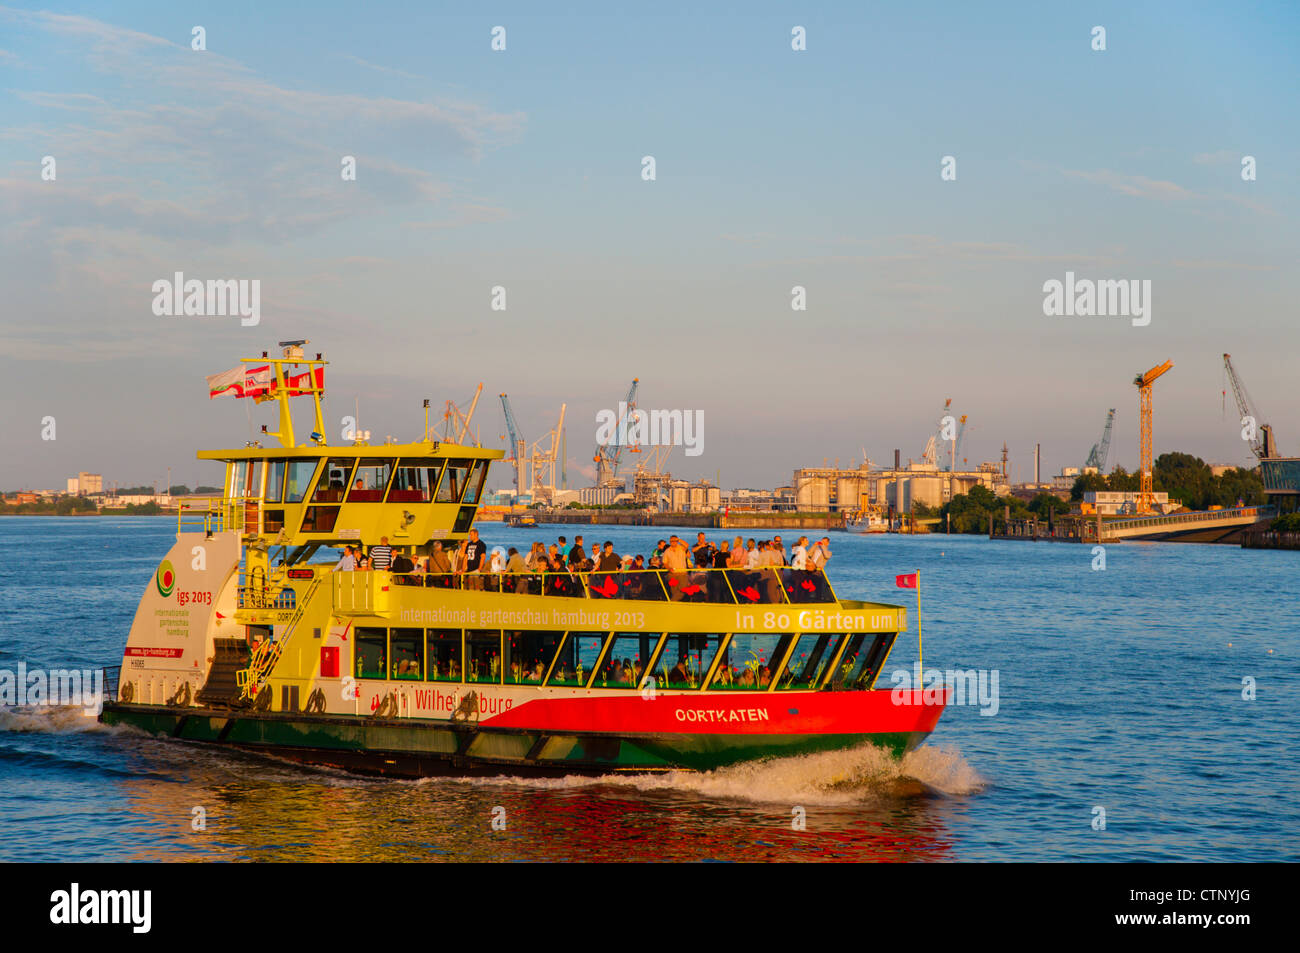 public transportation ferry boat 62 on norderelbe river hamburg stock photo royalty free image. Black Bedroom Furniture Sets. Home Design Ideas